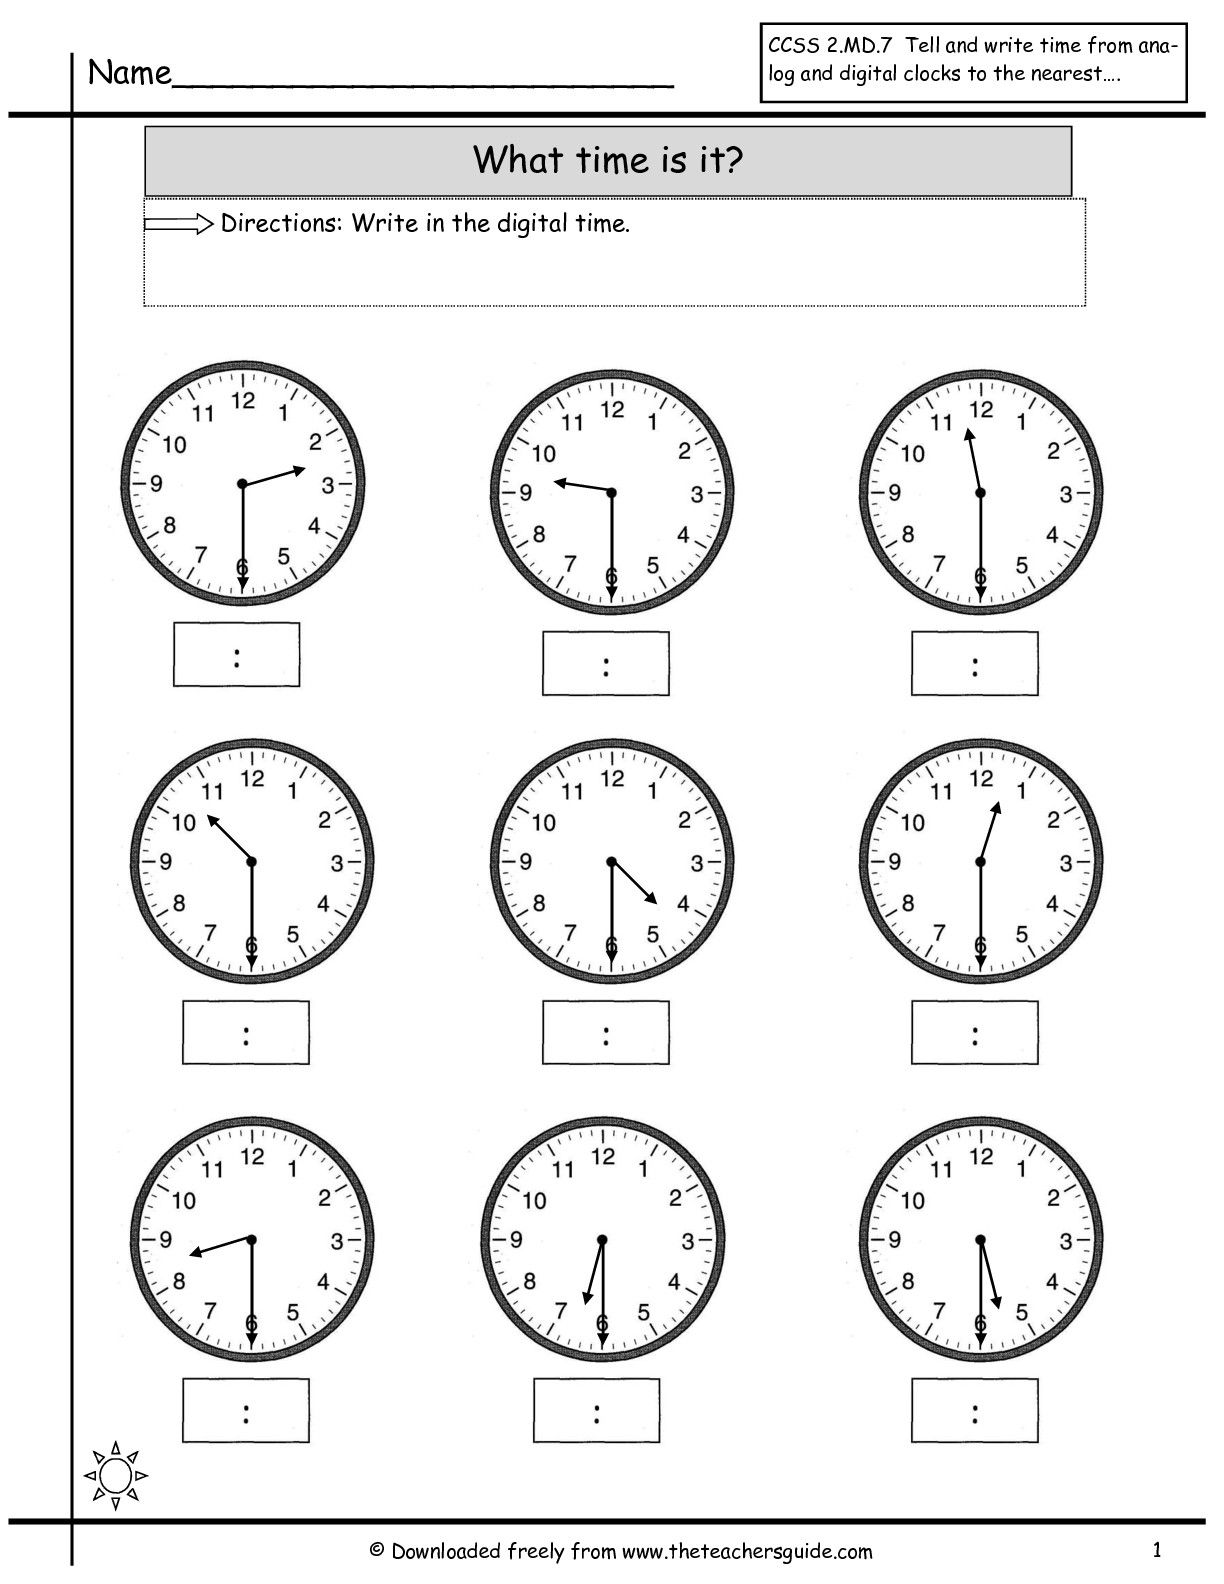 15 Best Clock Worksheets Images On Best Worksheets Collection